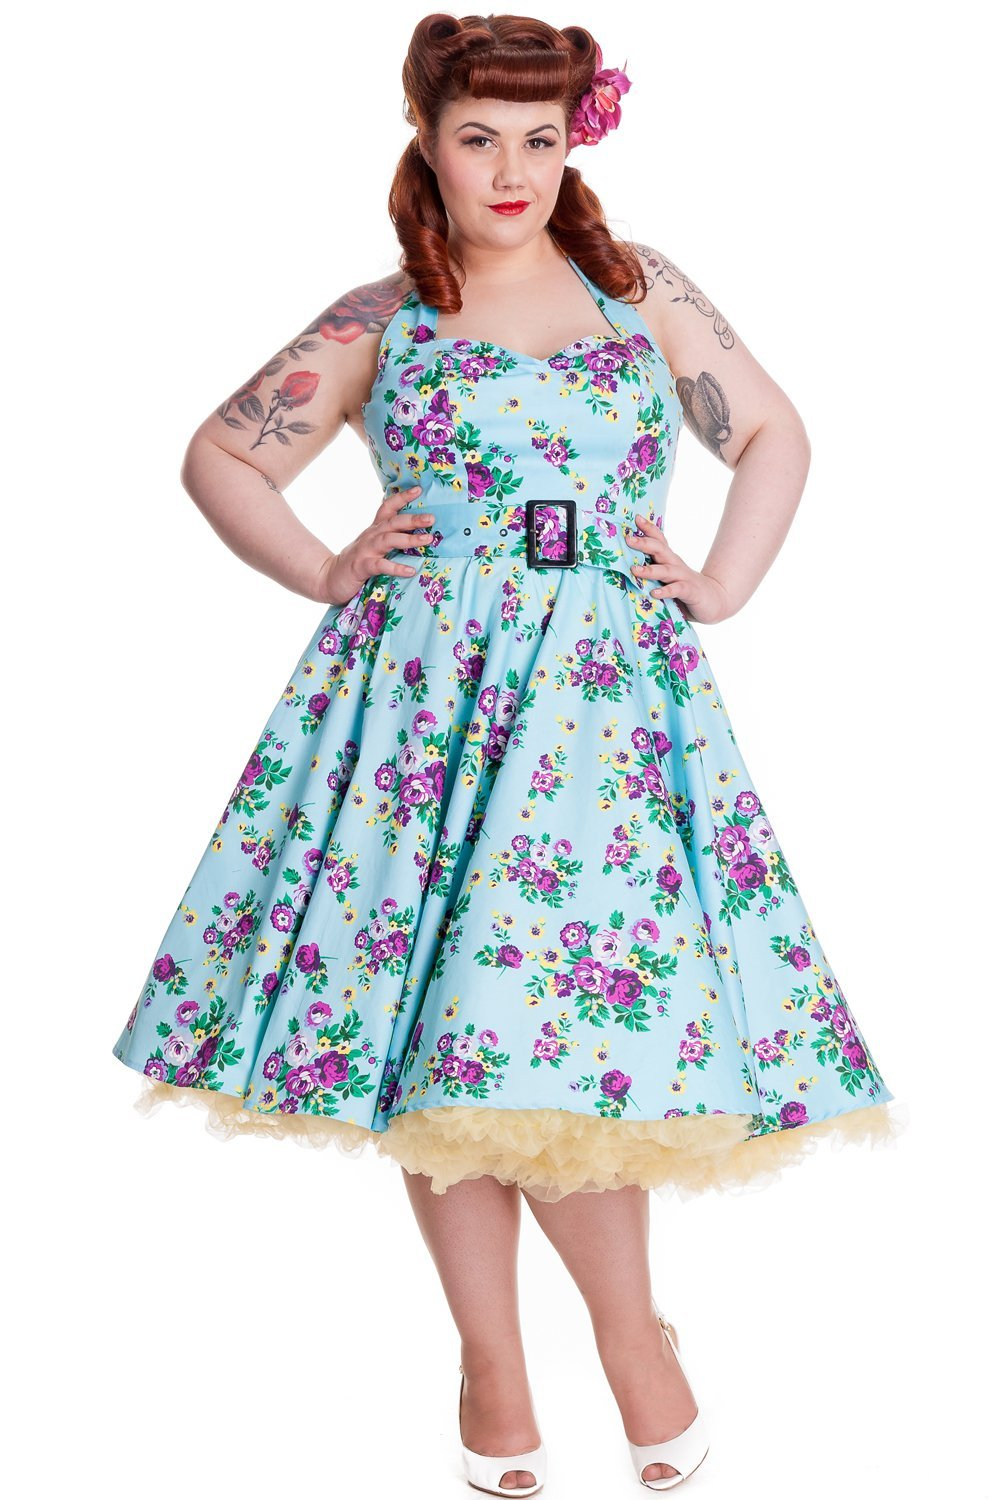 Hell Bunny - May Day Floral Dress (Plus Size) - Bohemian Finds